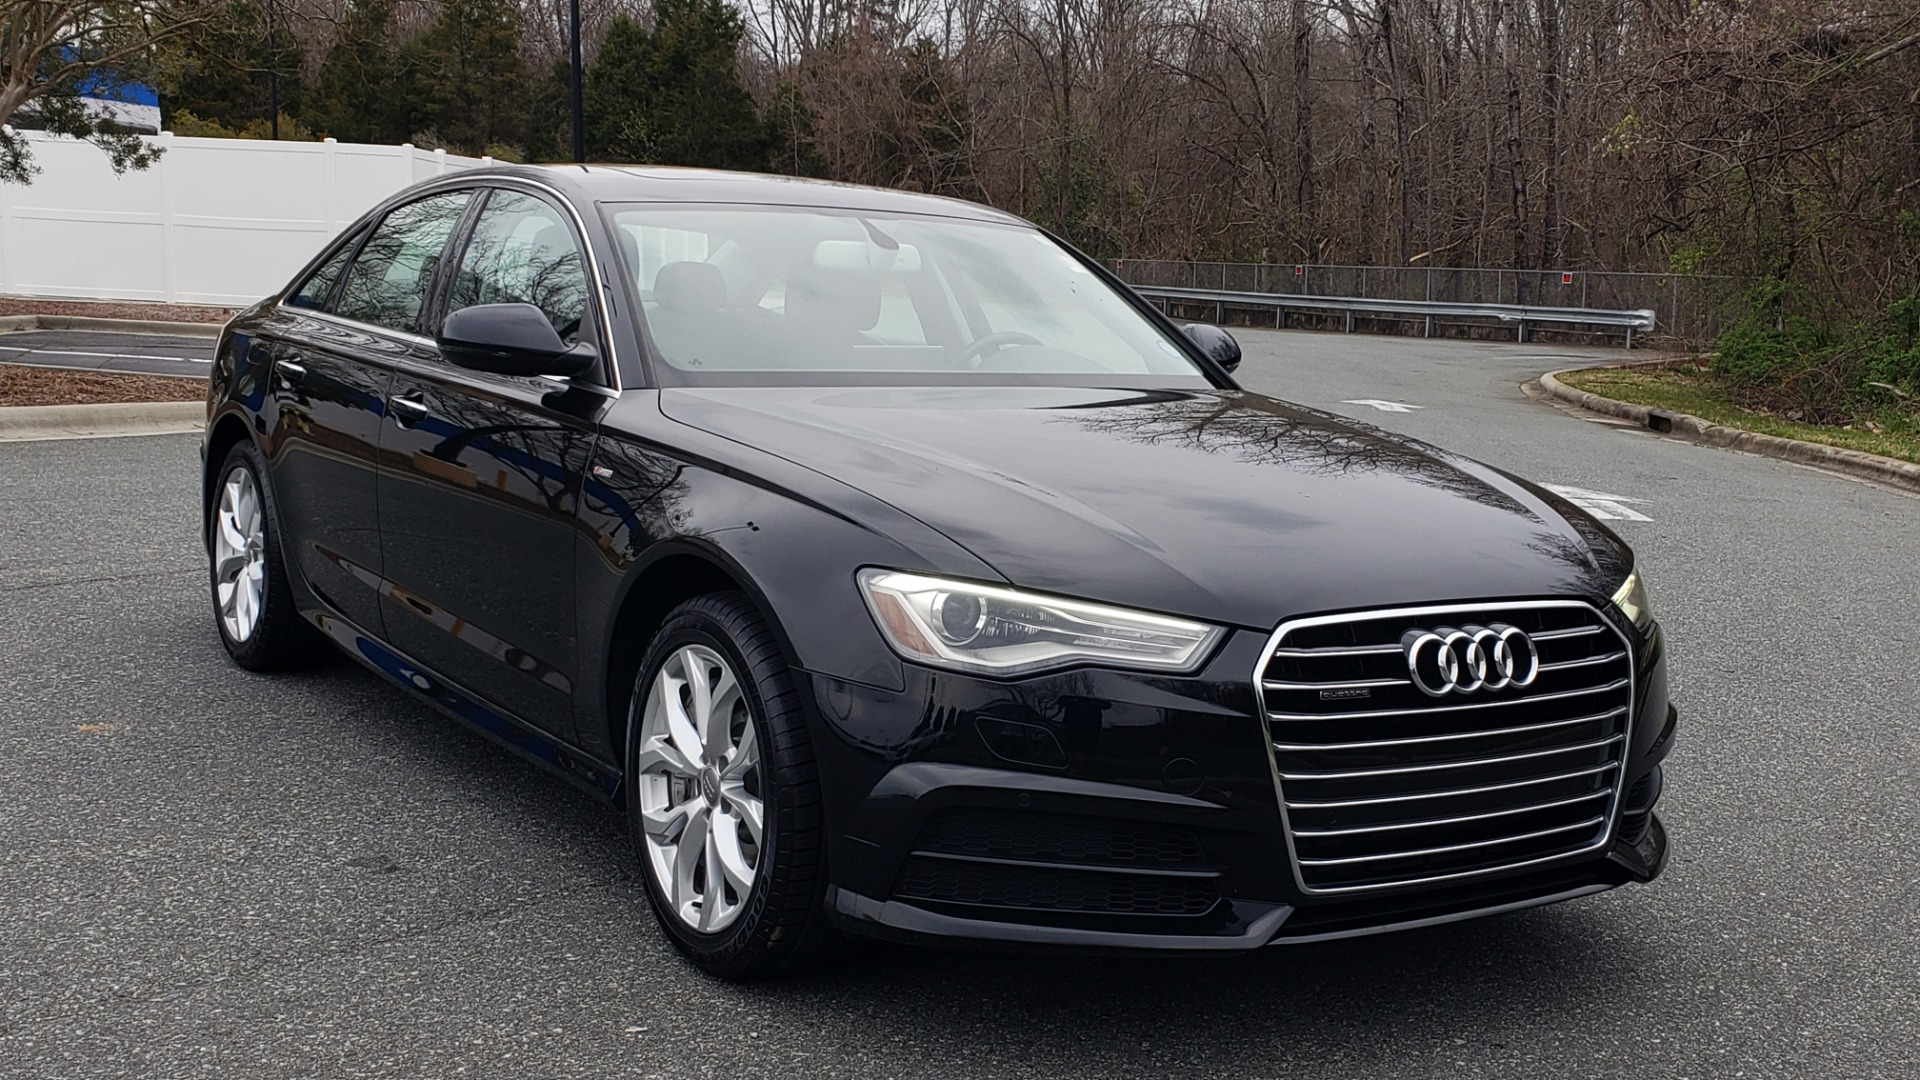 Used 2017 Audi A6 PREMIUM PLUS / NAV / SUNROOF / BOSE / CLD WTHR for sale Sold at Formula Imports in Charlotte NC 28227 4